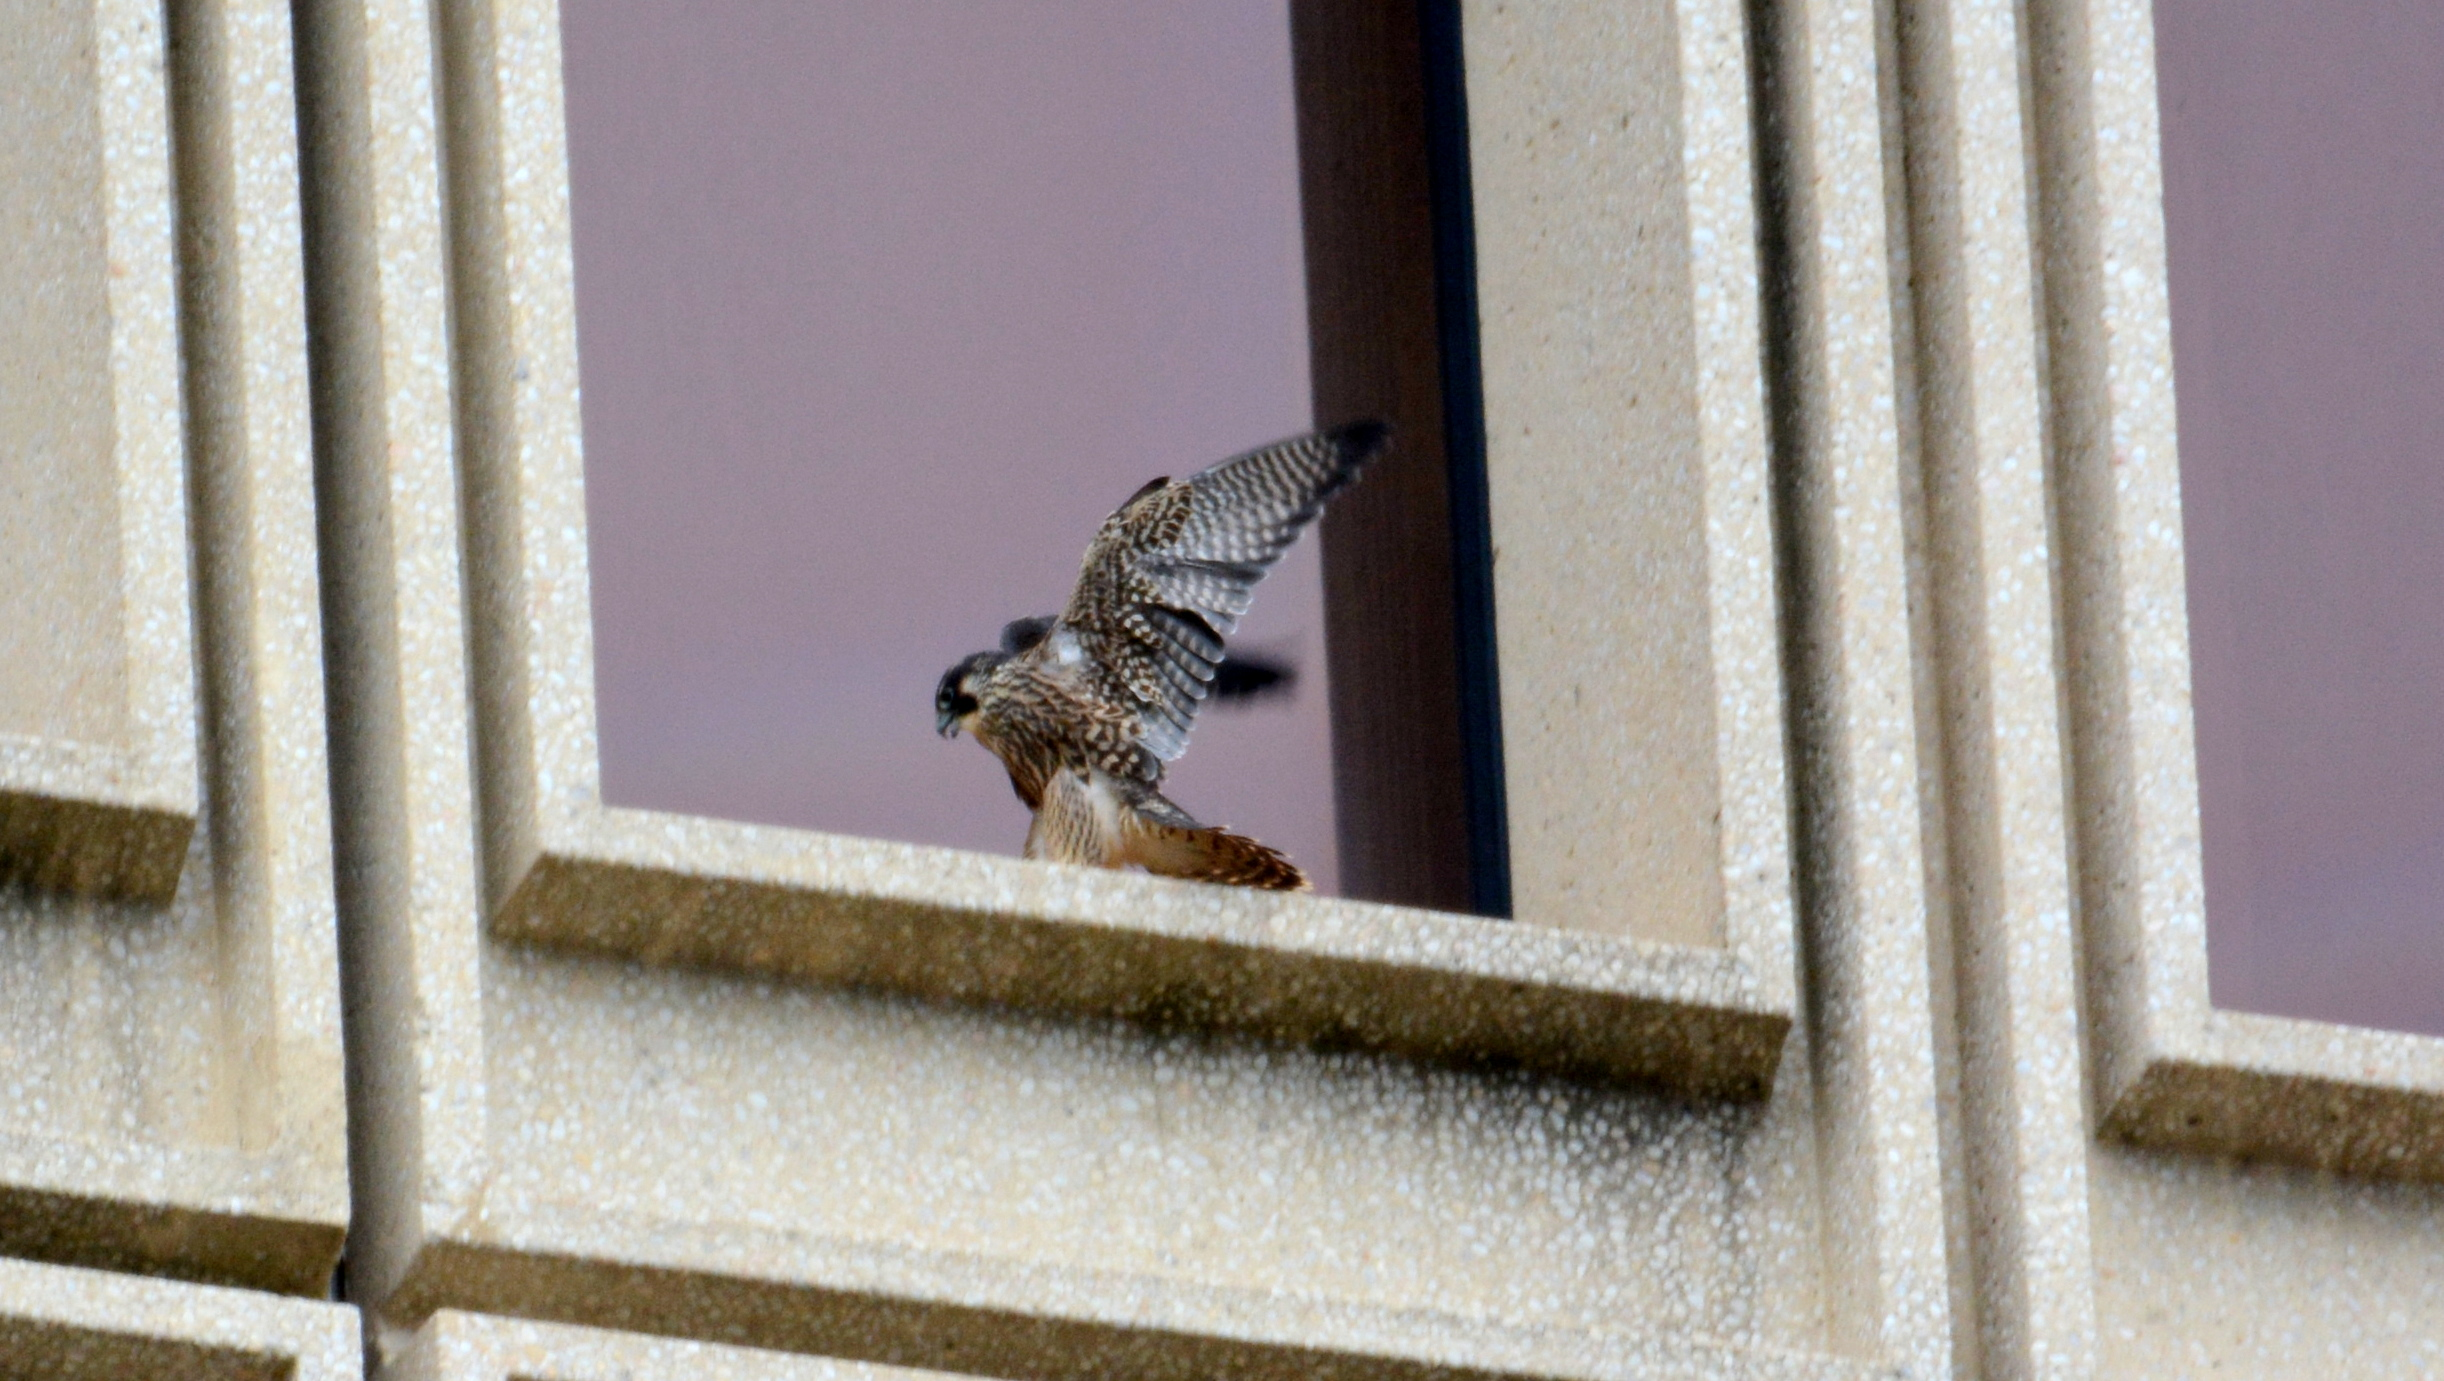 Coming in for a landing on a window ledge